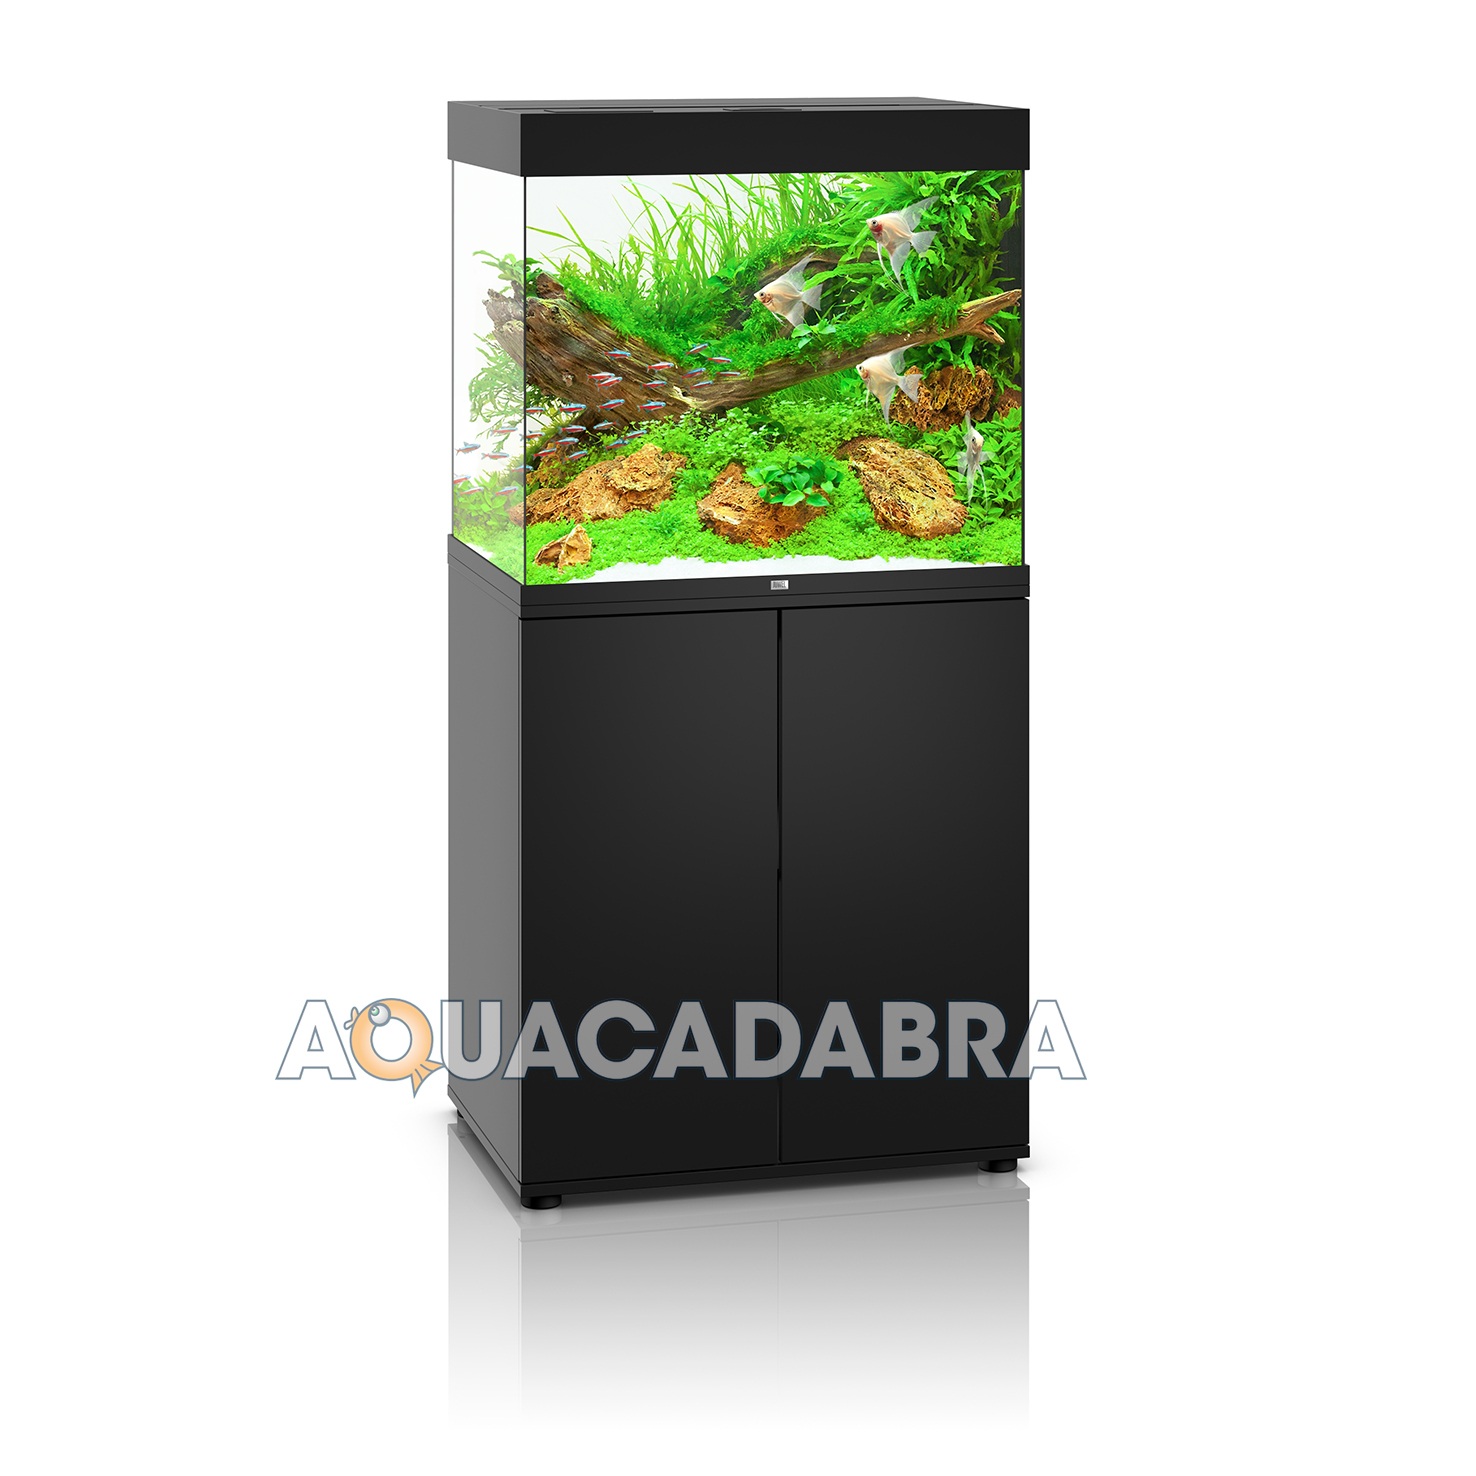 juwel lido 200 led aquarium cabinet led lighting filter heater ebay. Black Bedroom Furniture Sets. Home Design Ideas